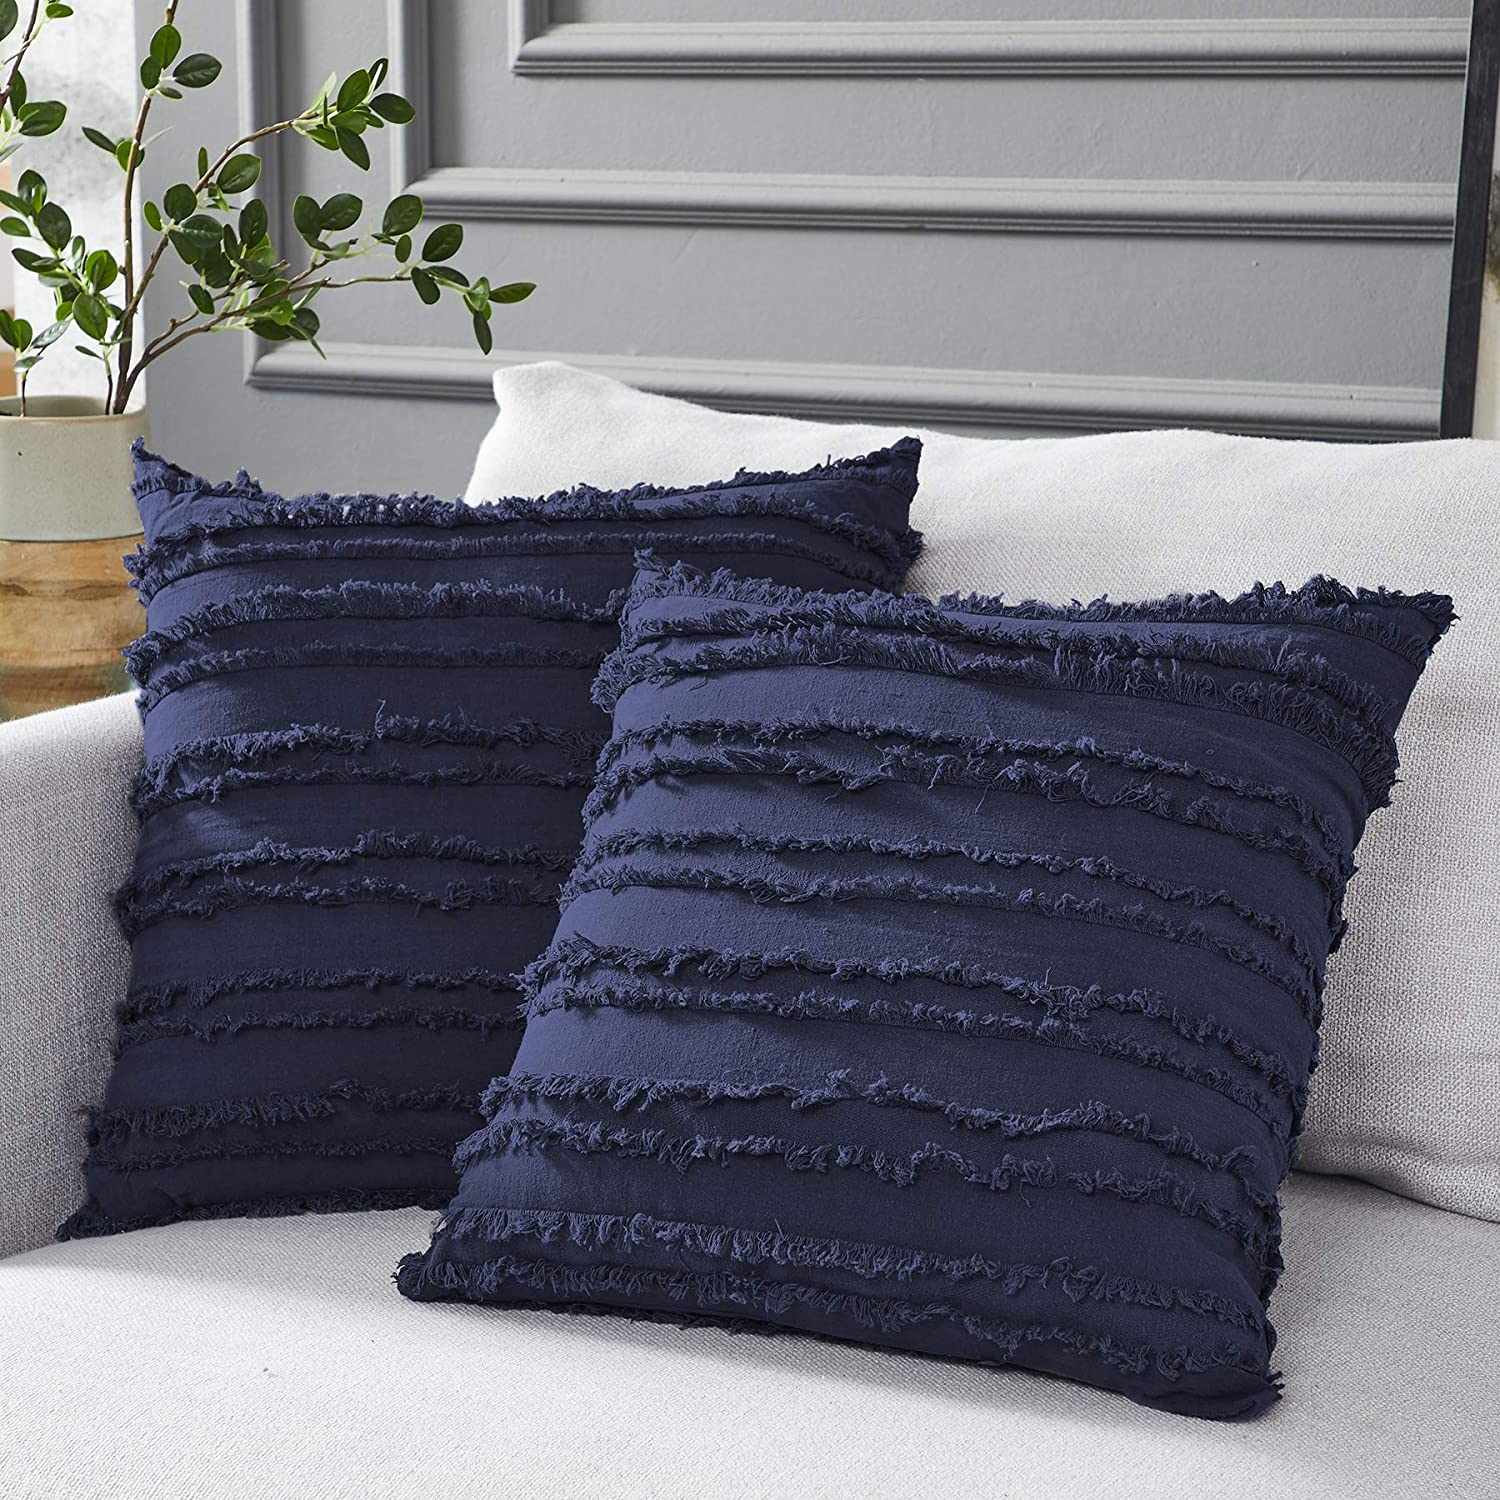 Amazon.com: Longhui bedding Navy Blue Throw Pillow Covers for